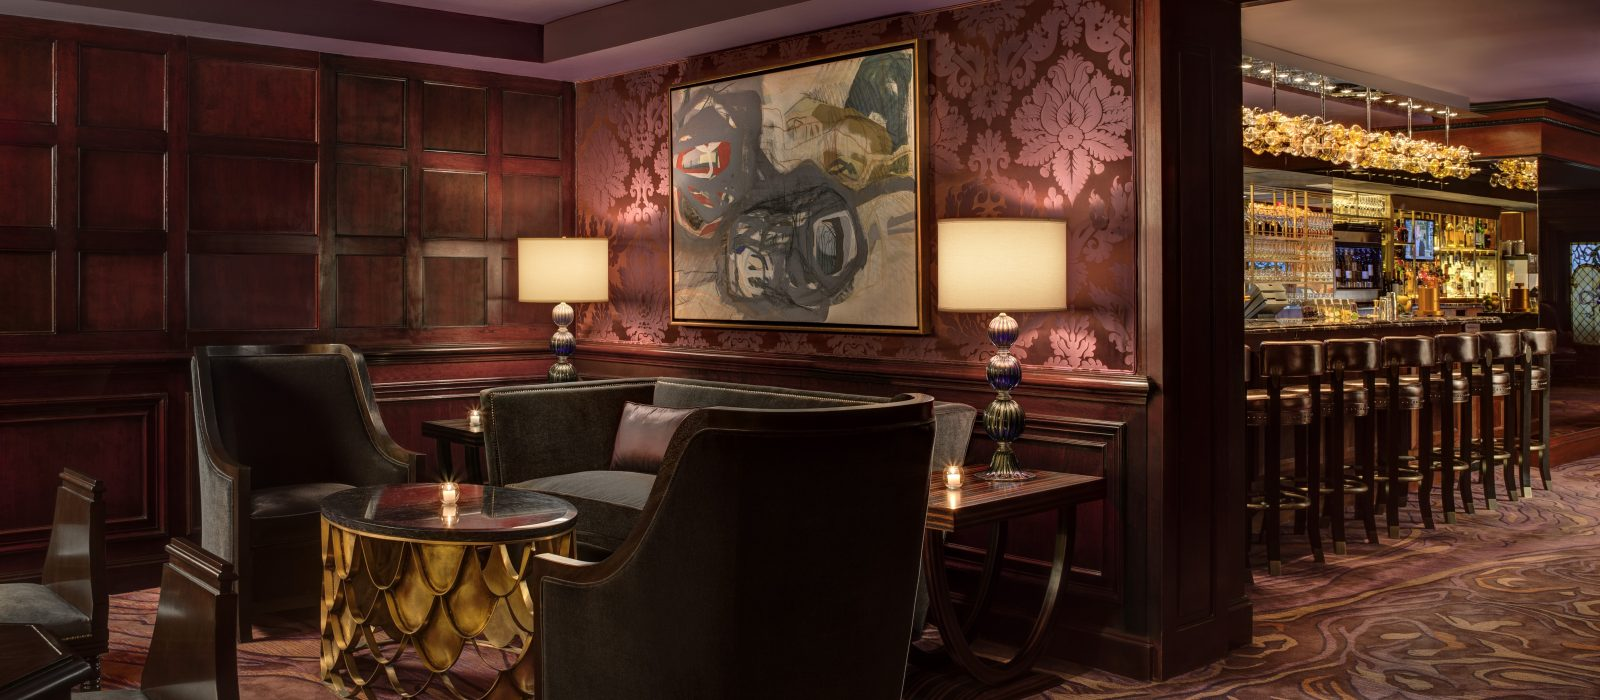 new-york-palace-hotel-brabbu Best New York RestaurantsTop 10 Best New York Restaurants right nownew york palace hotel brabbu